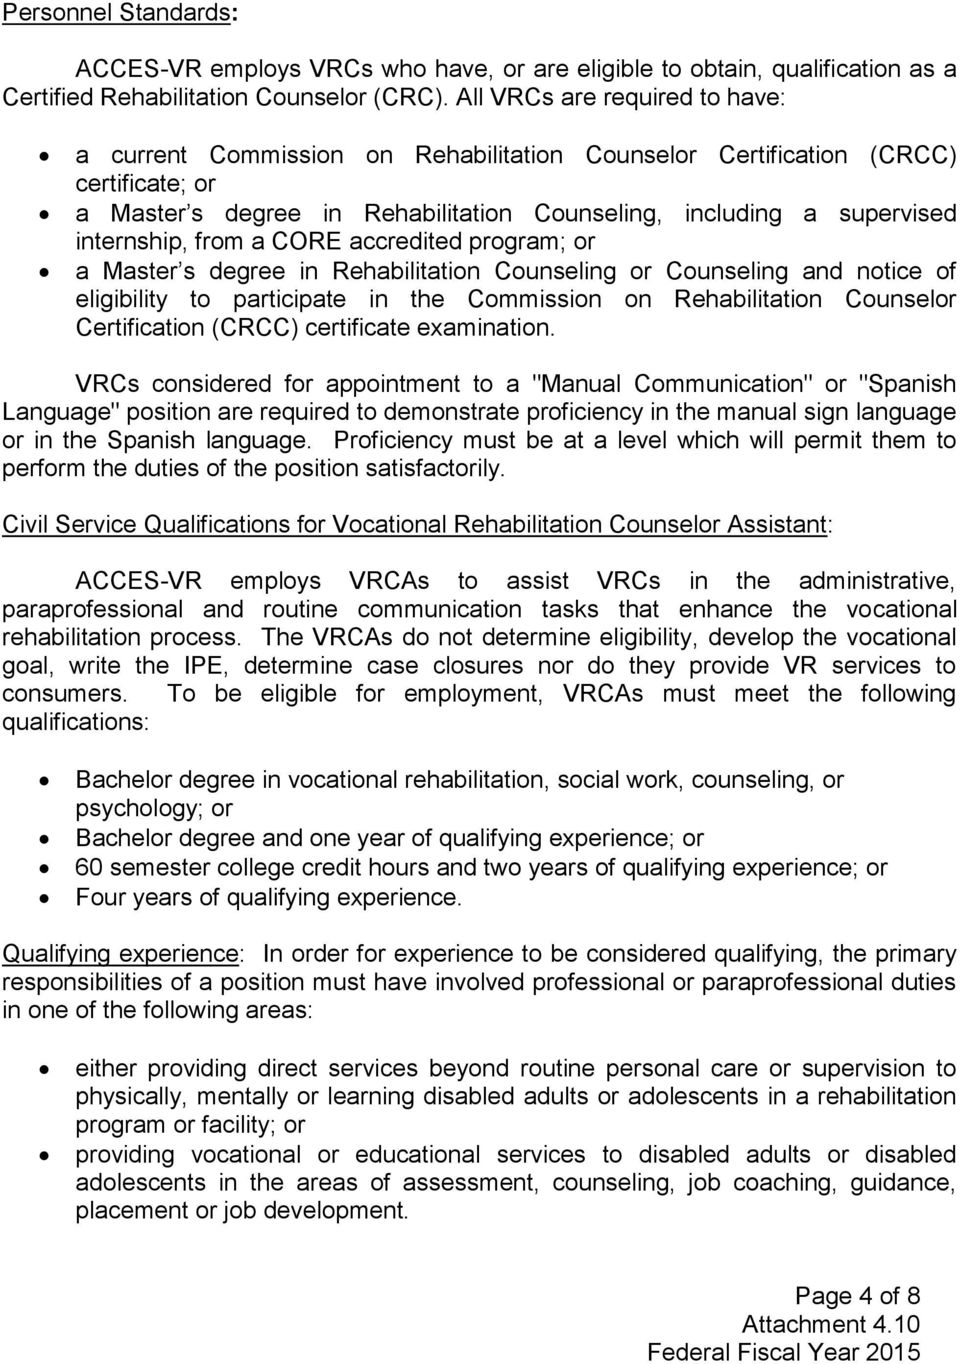 Comprehensive System Of Personnel Development Cspd Attachment Pdf